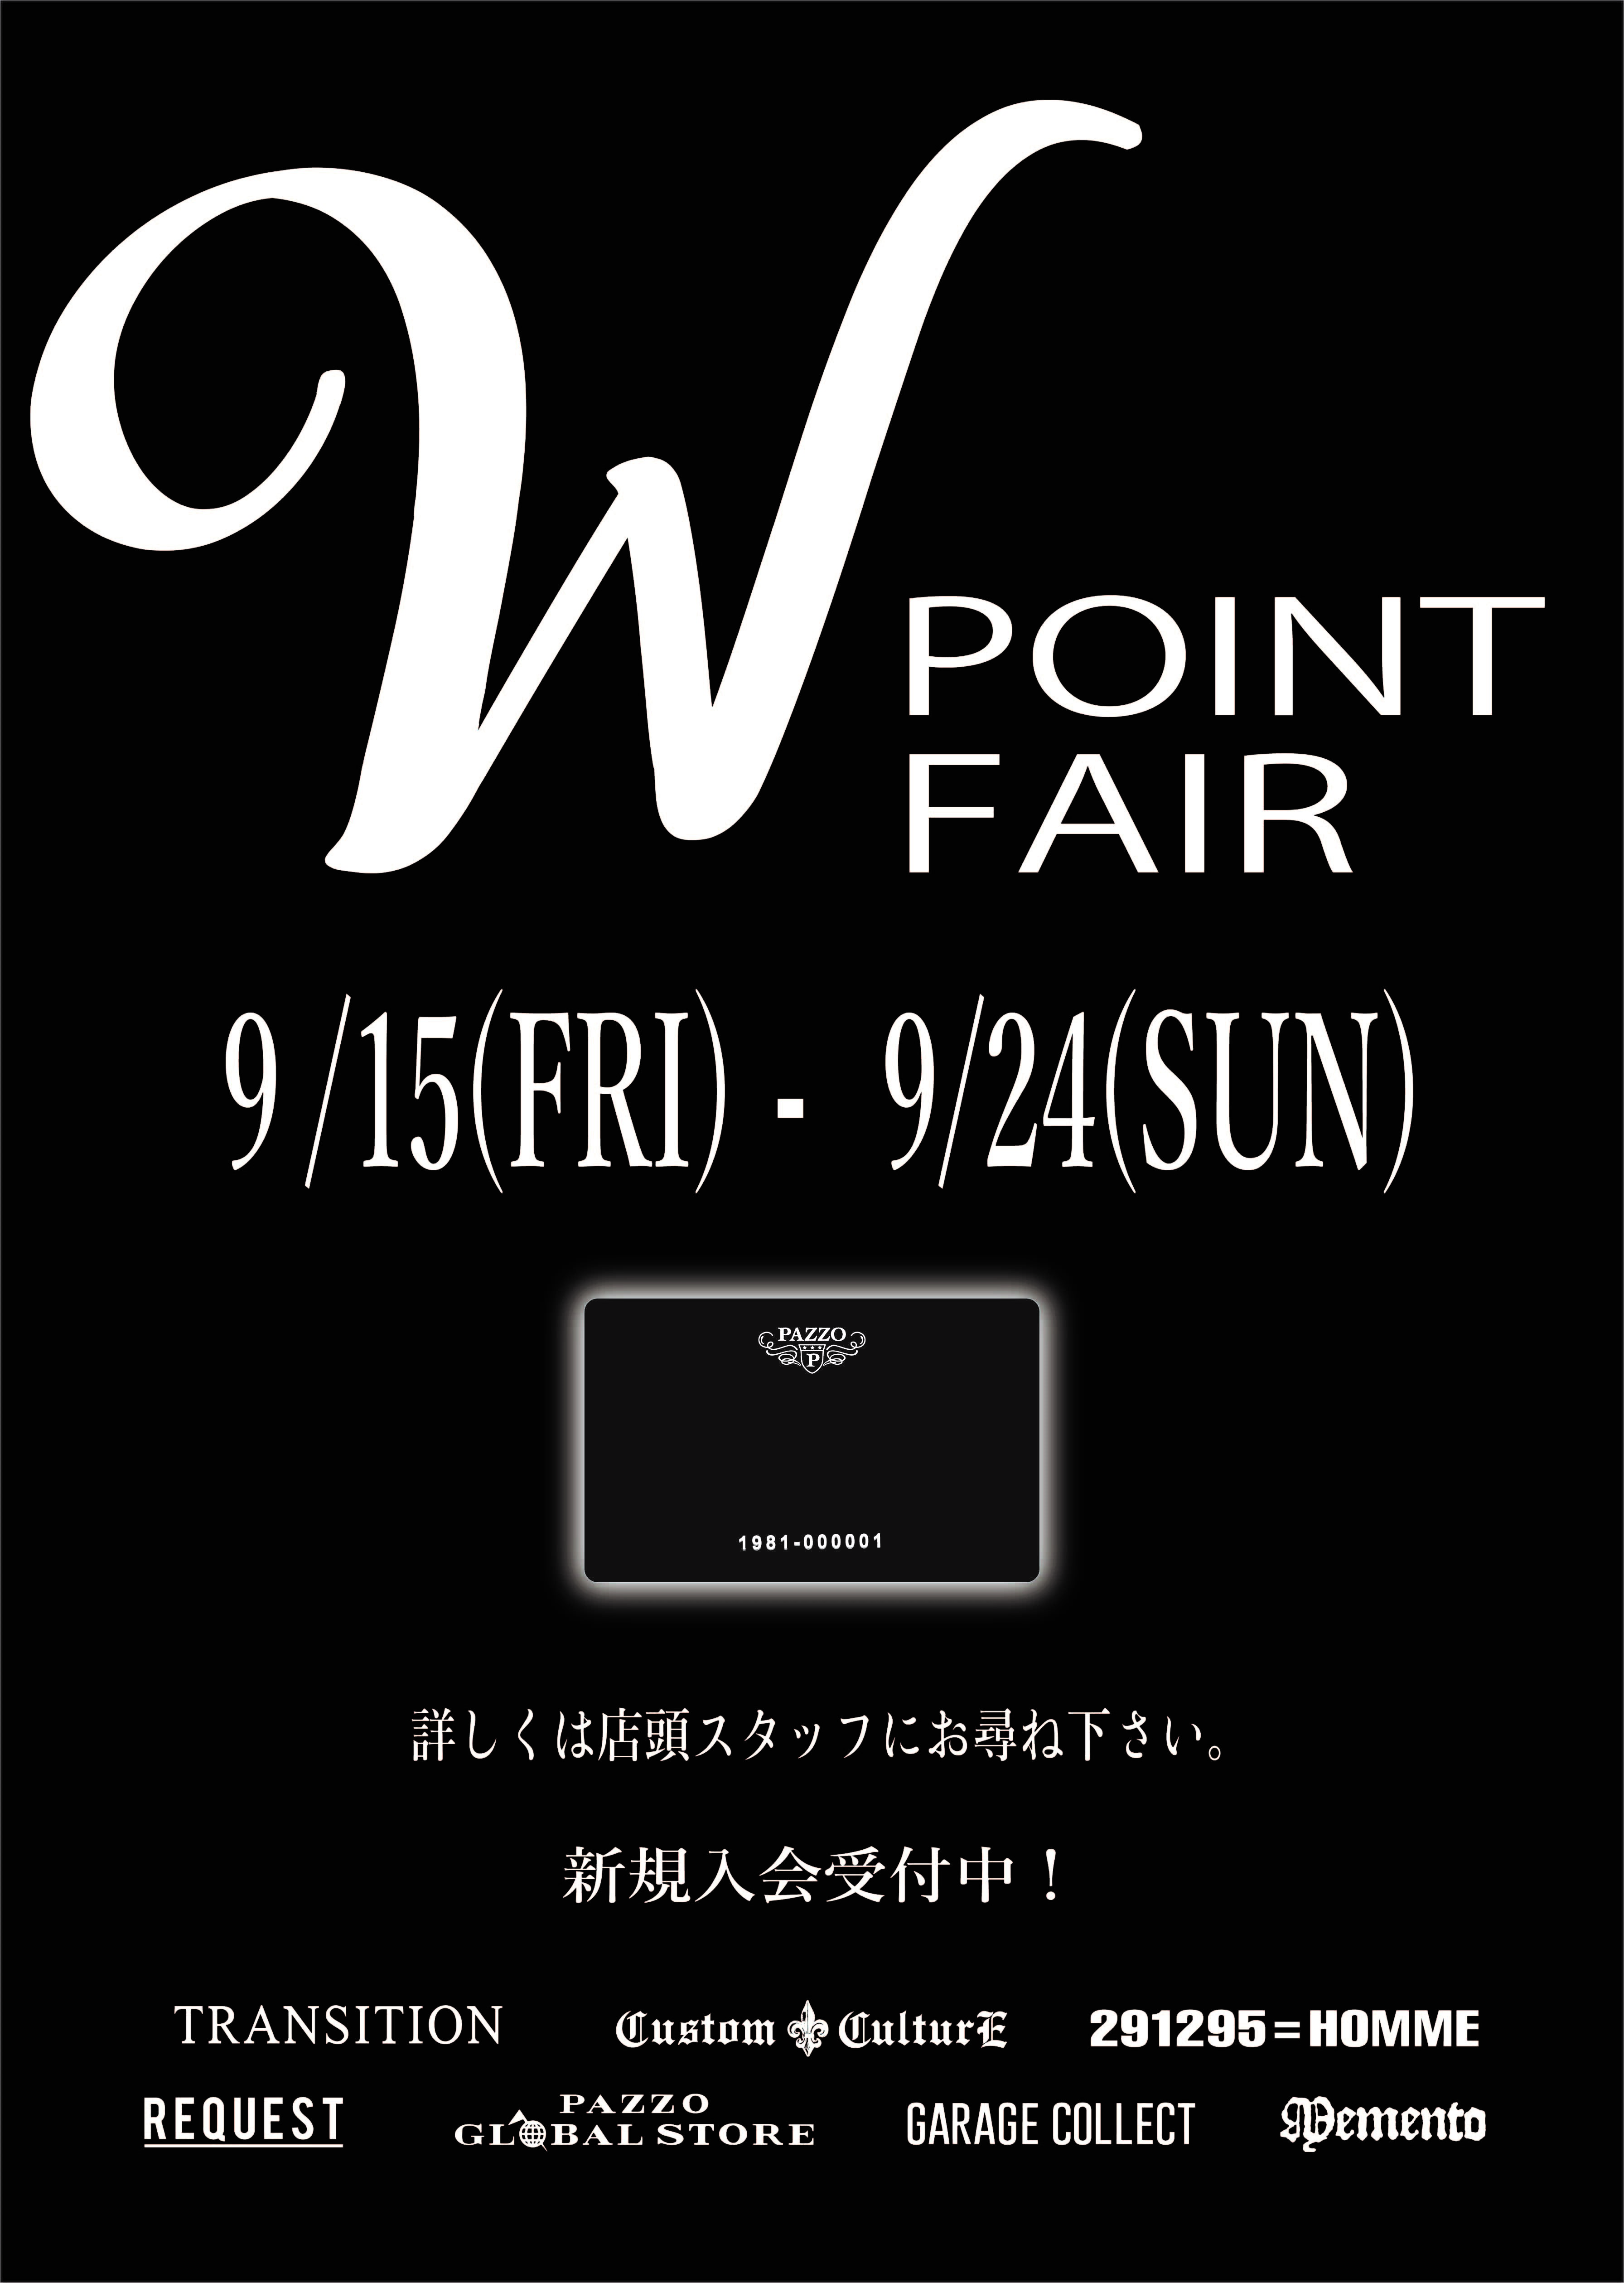 【W POINT FAIR 9/15(fri)〜9/24(sun)】